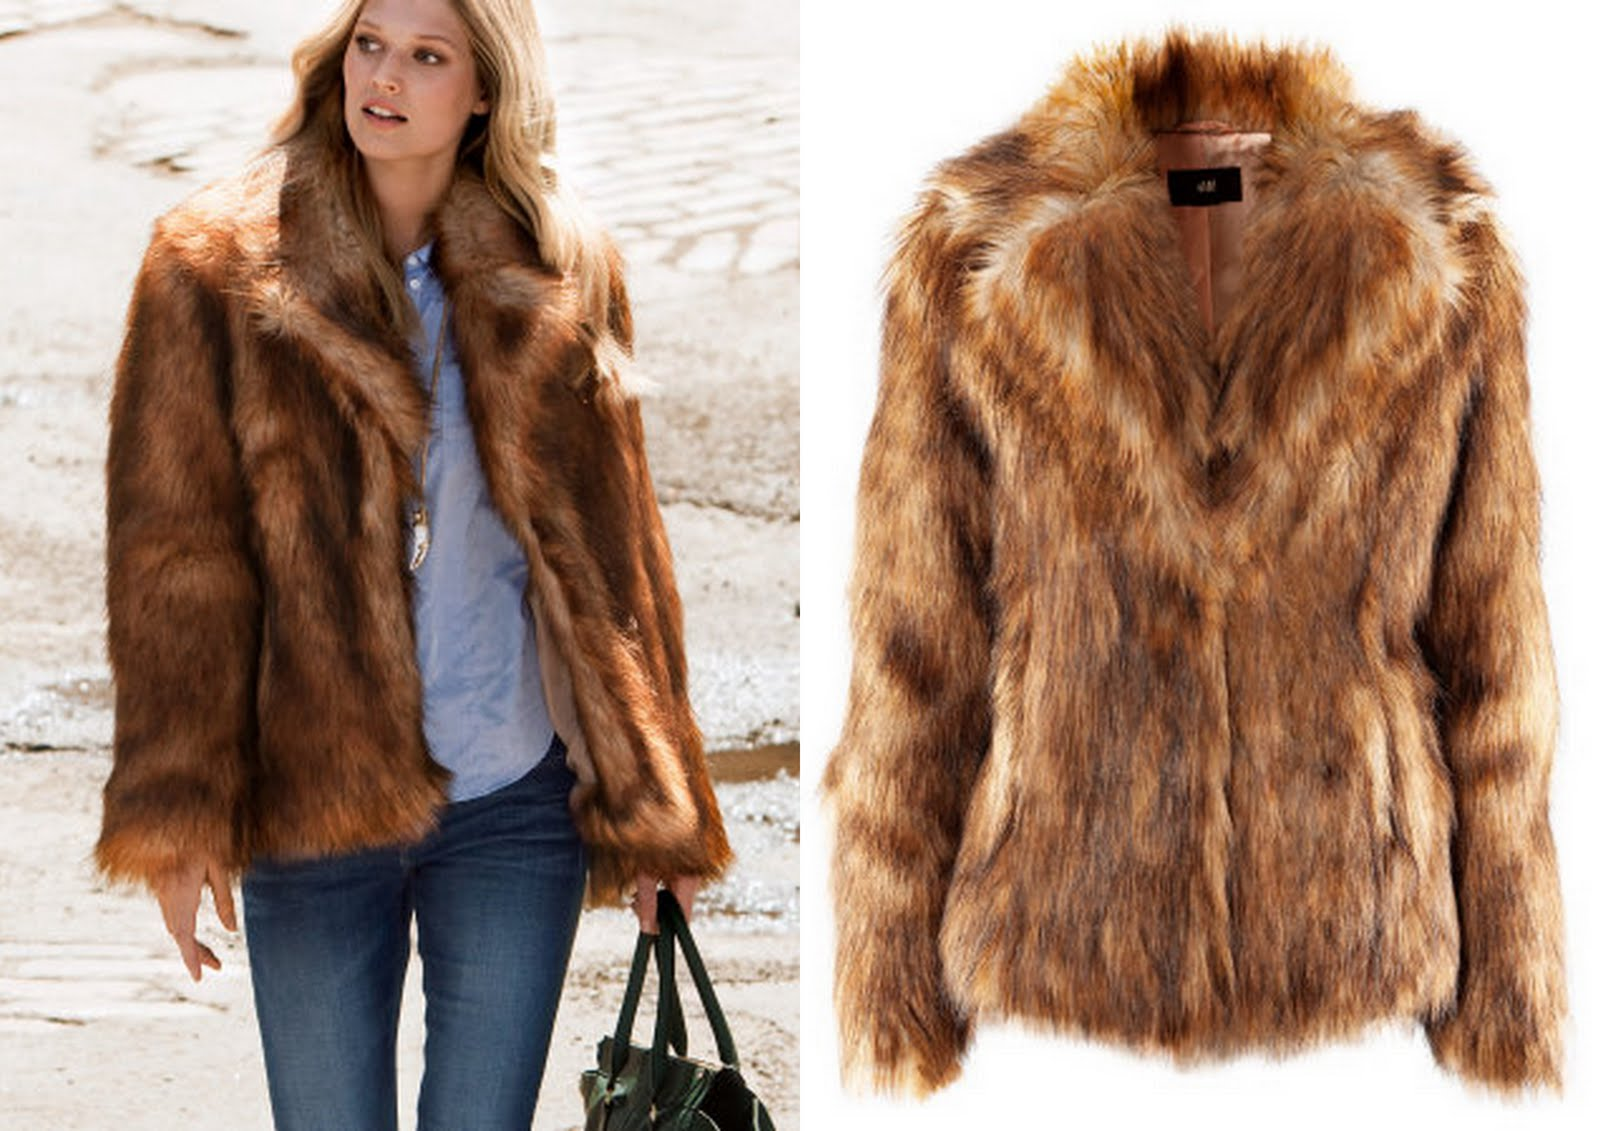 online store 5673a 38767 Crystal Kingdom: H&M Autunno/Inverno 2011/2012